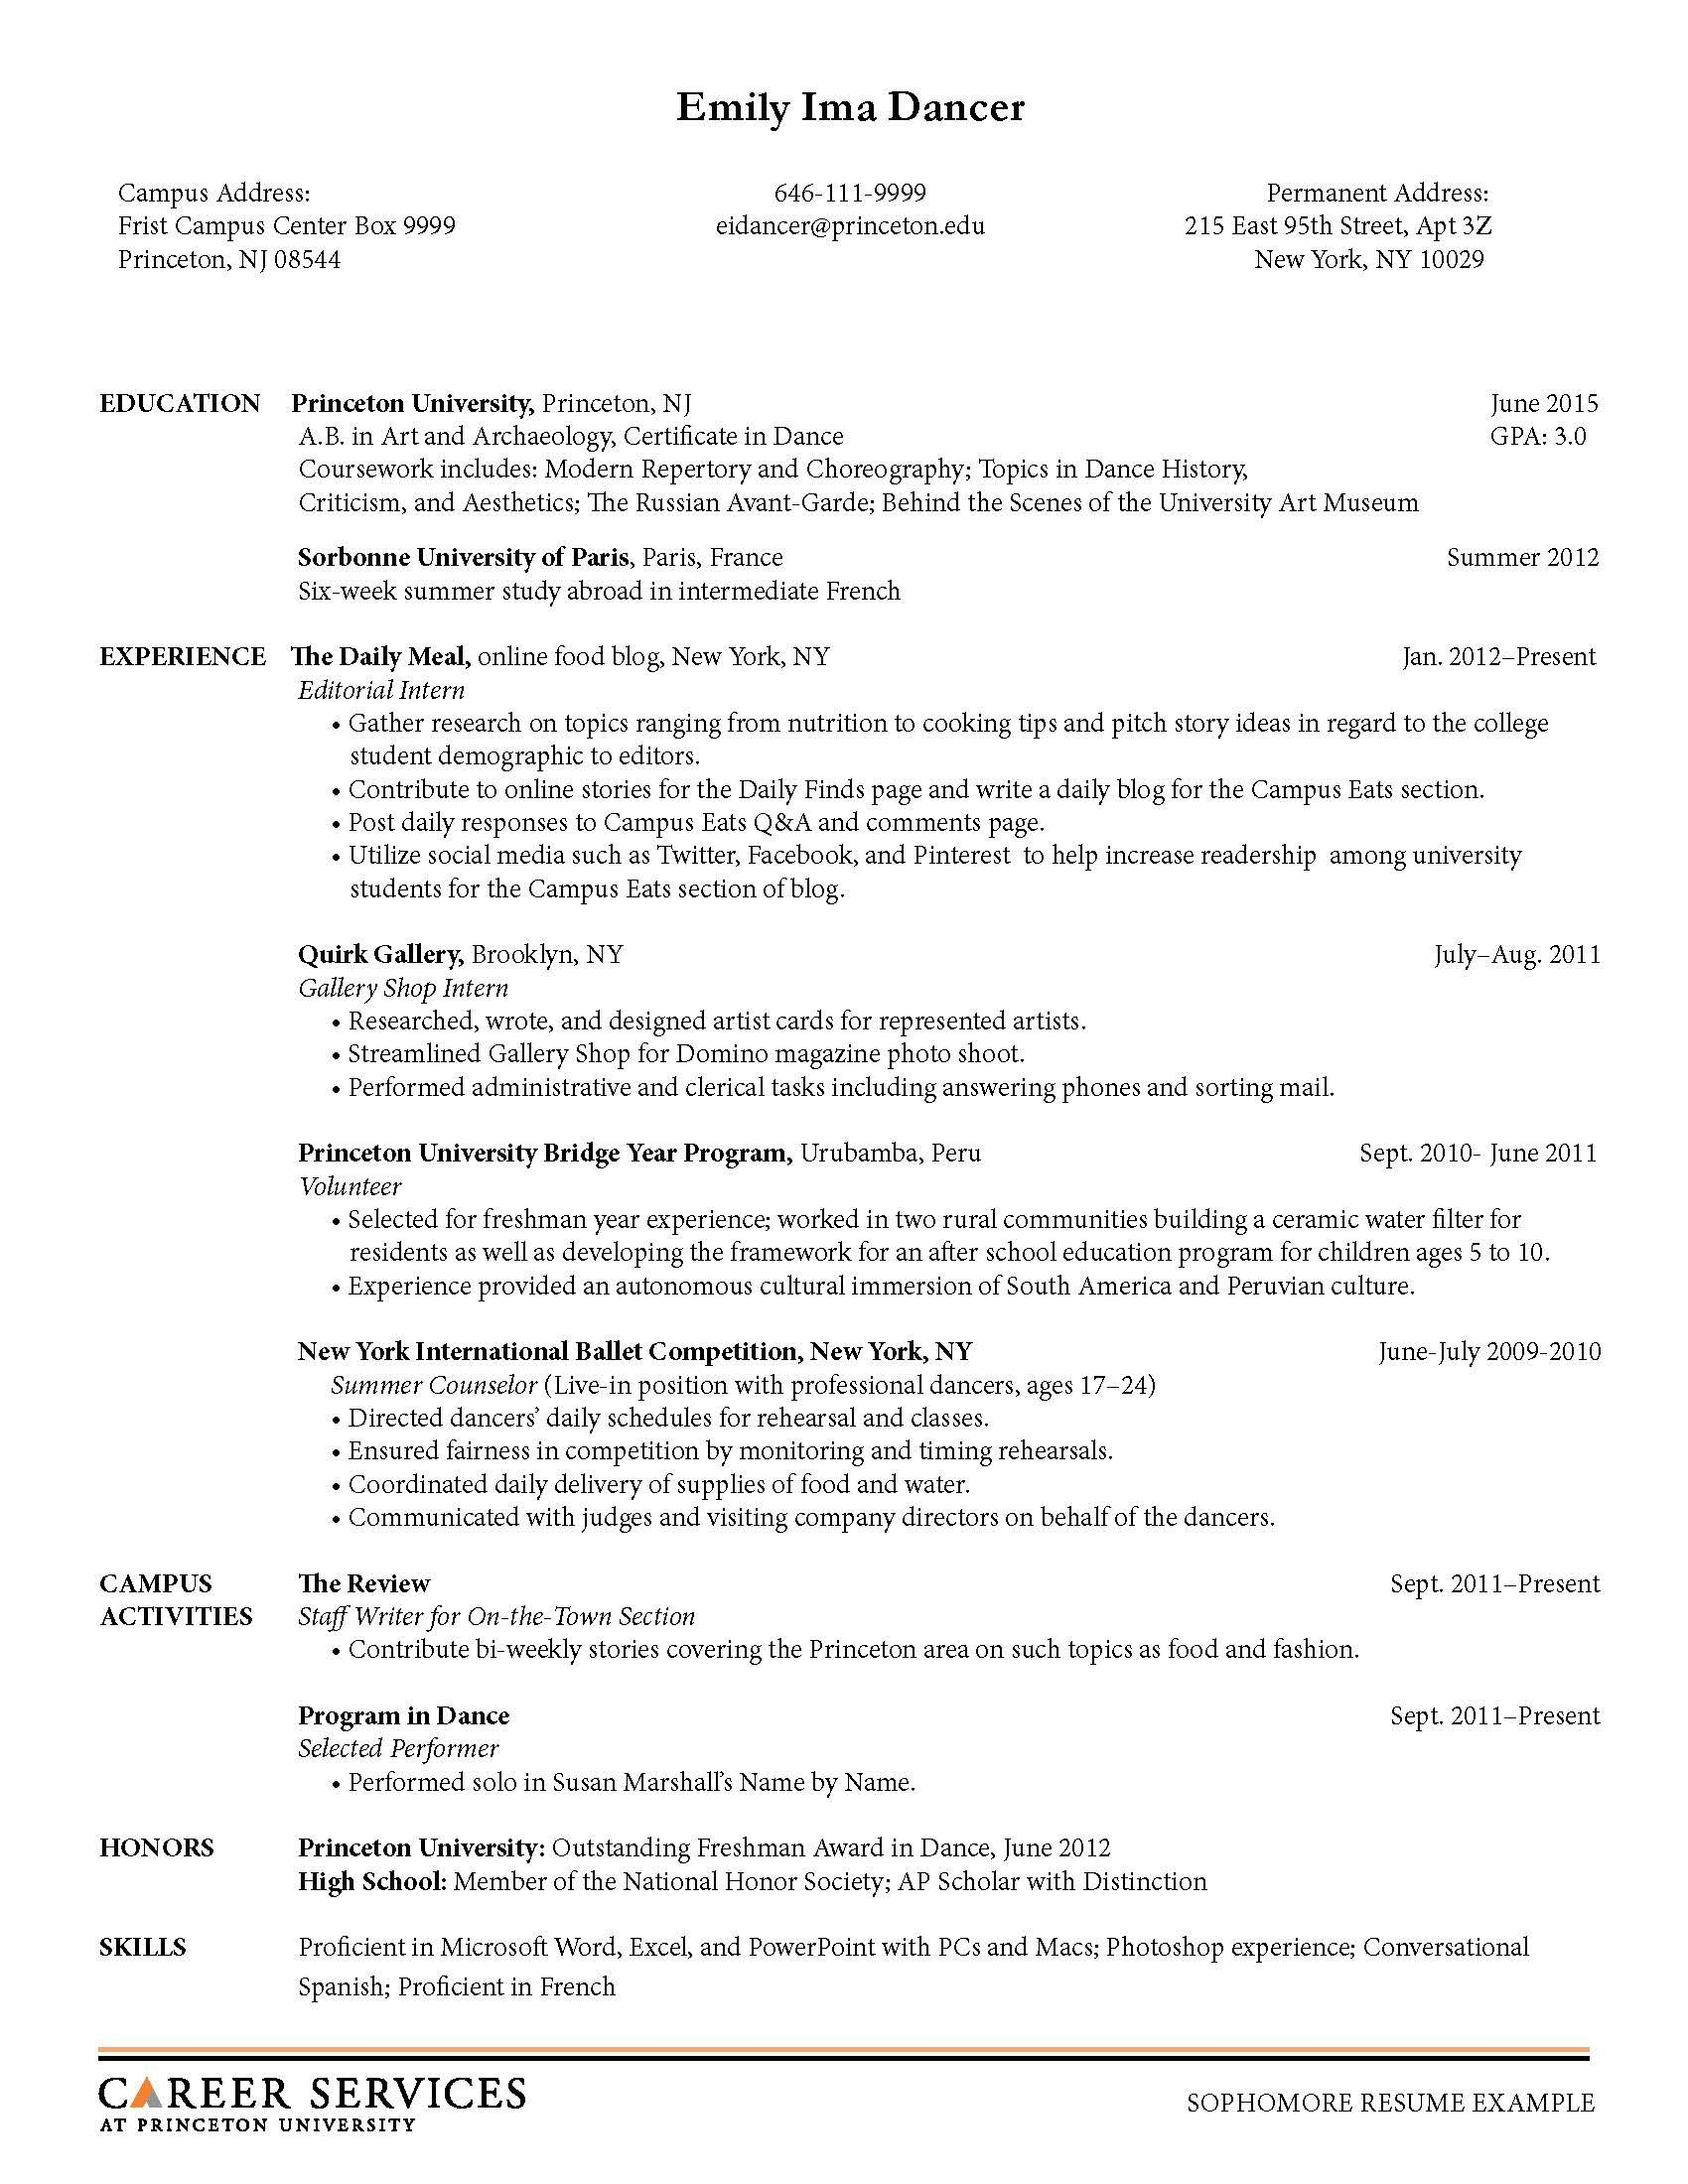 Psychology Graduate School Resume - http://www.resumecareer.info ...